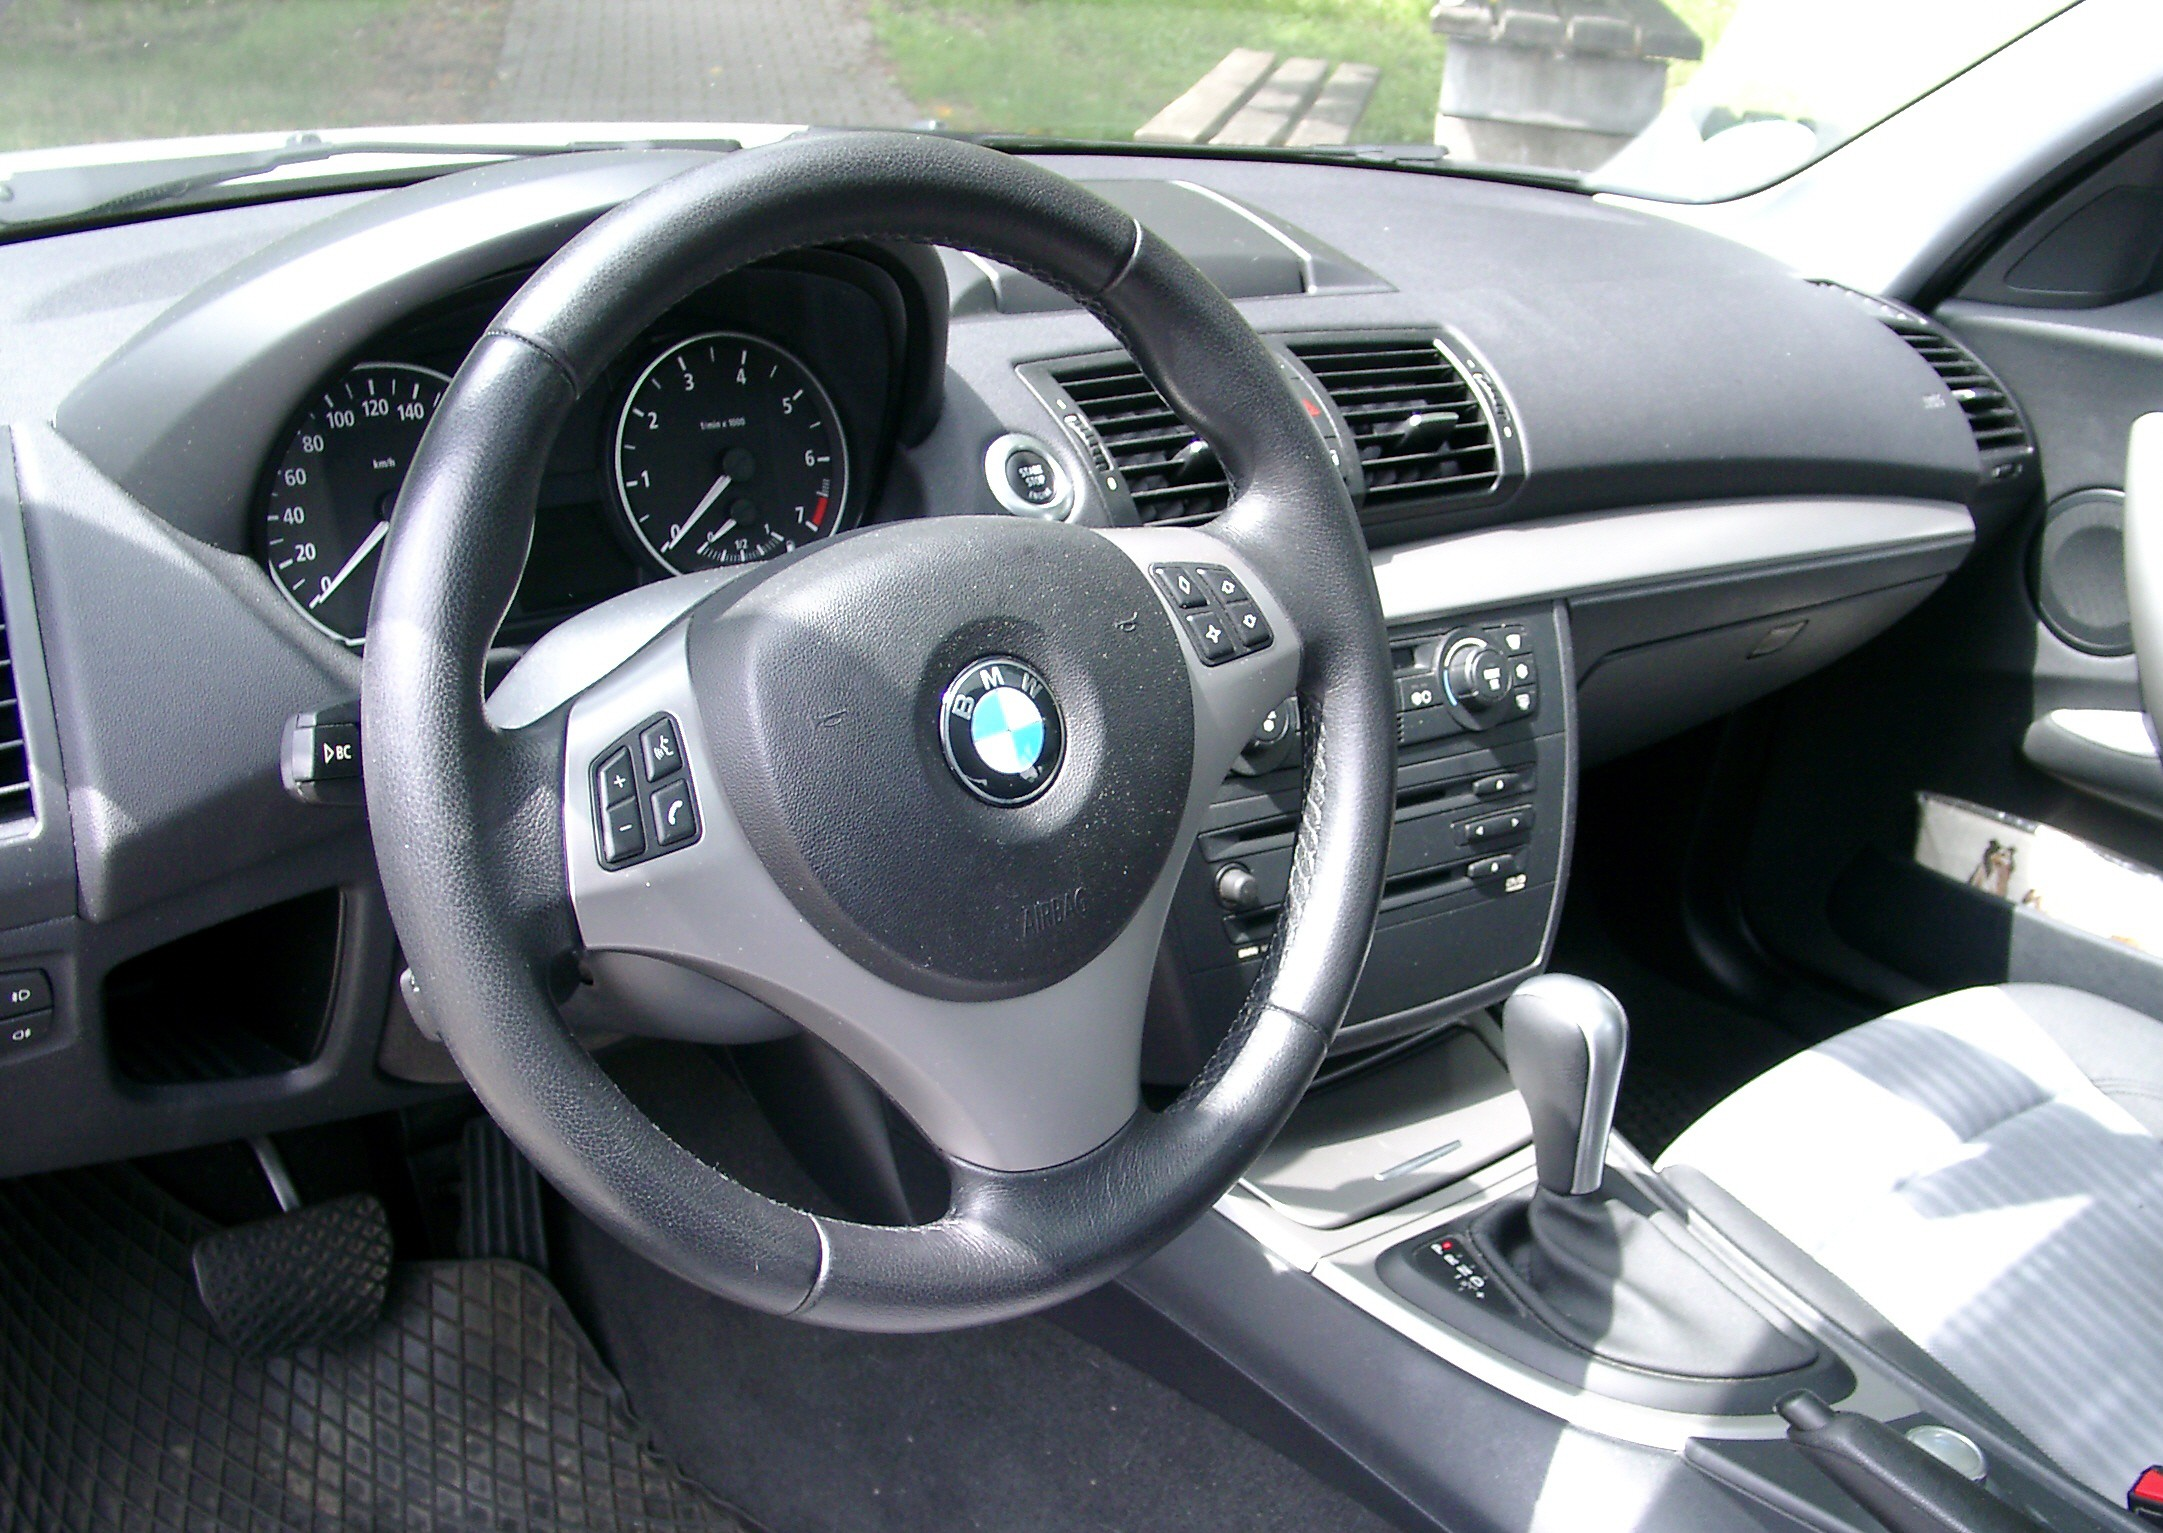 file bmw e81 dashboard wikimedia commons. Black Bedroom Furniture Sets. Home Design Ideas